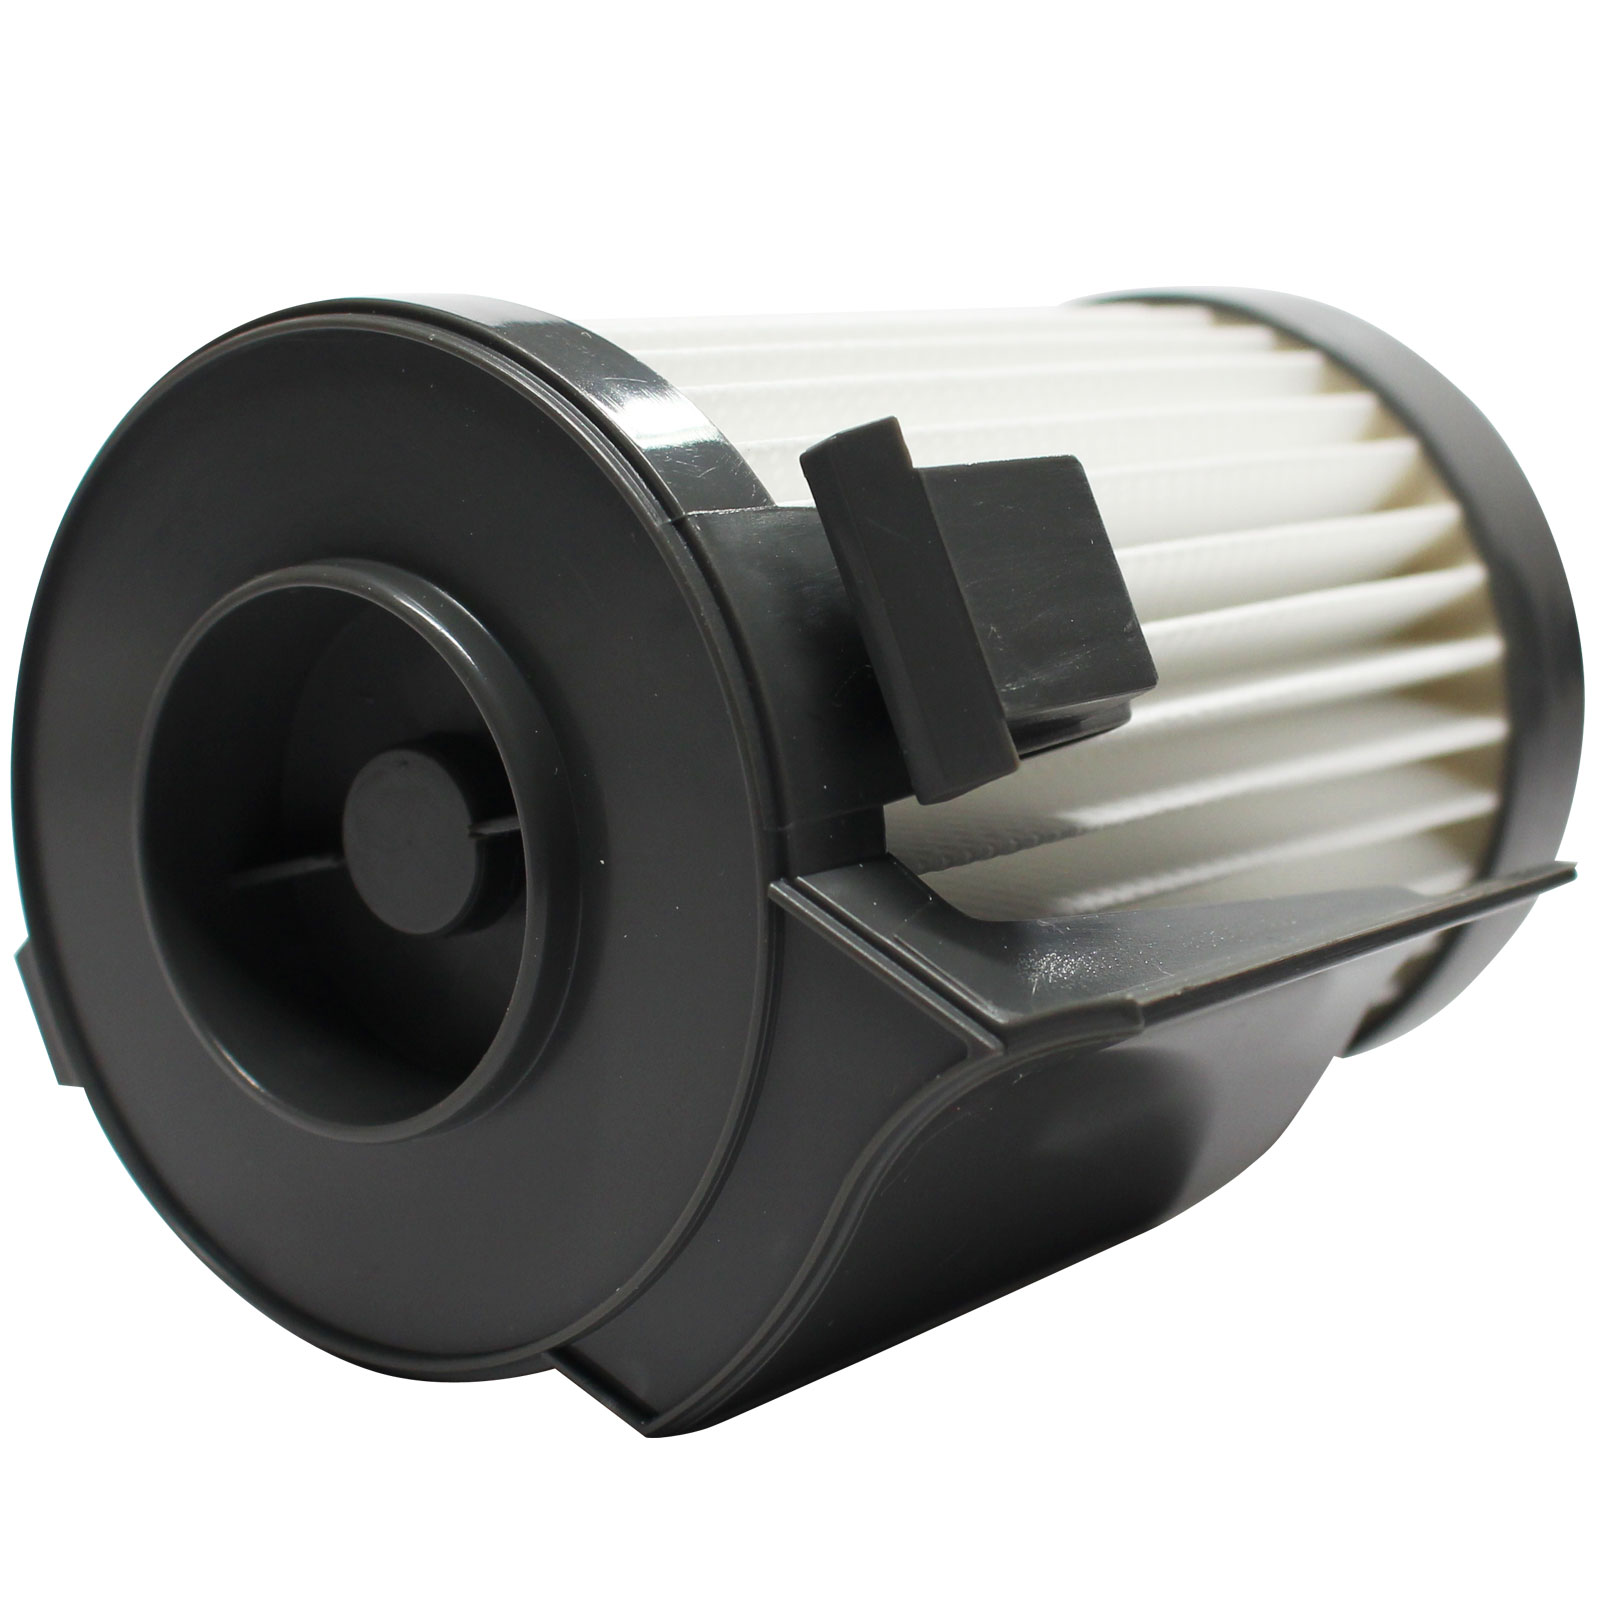 Replacement Eureka 433a Vacuum Dust Cup Filter - Compatible Eureka DCF-10, DCF-14 Filter - image 2 of 4